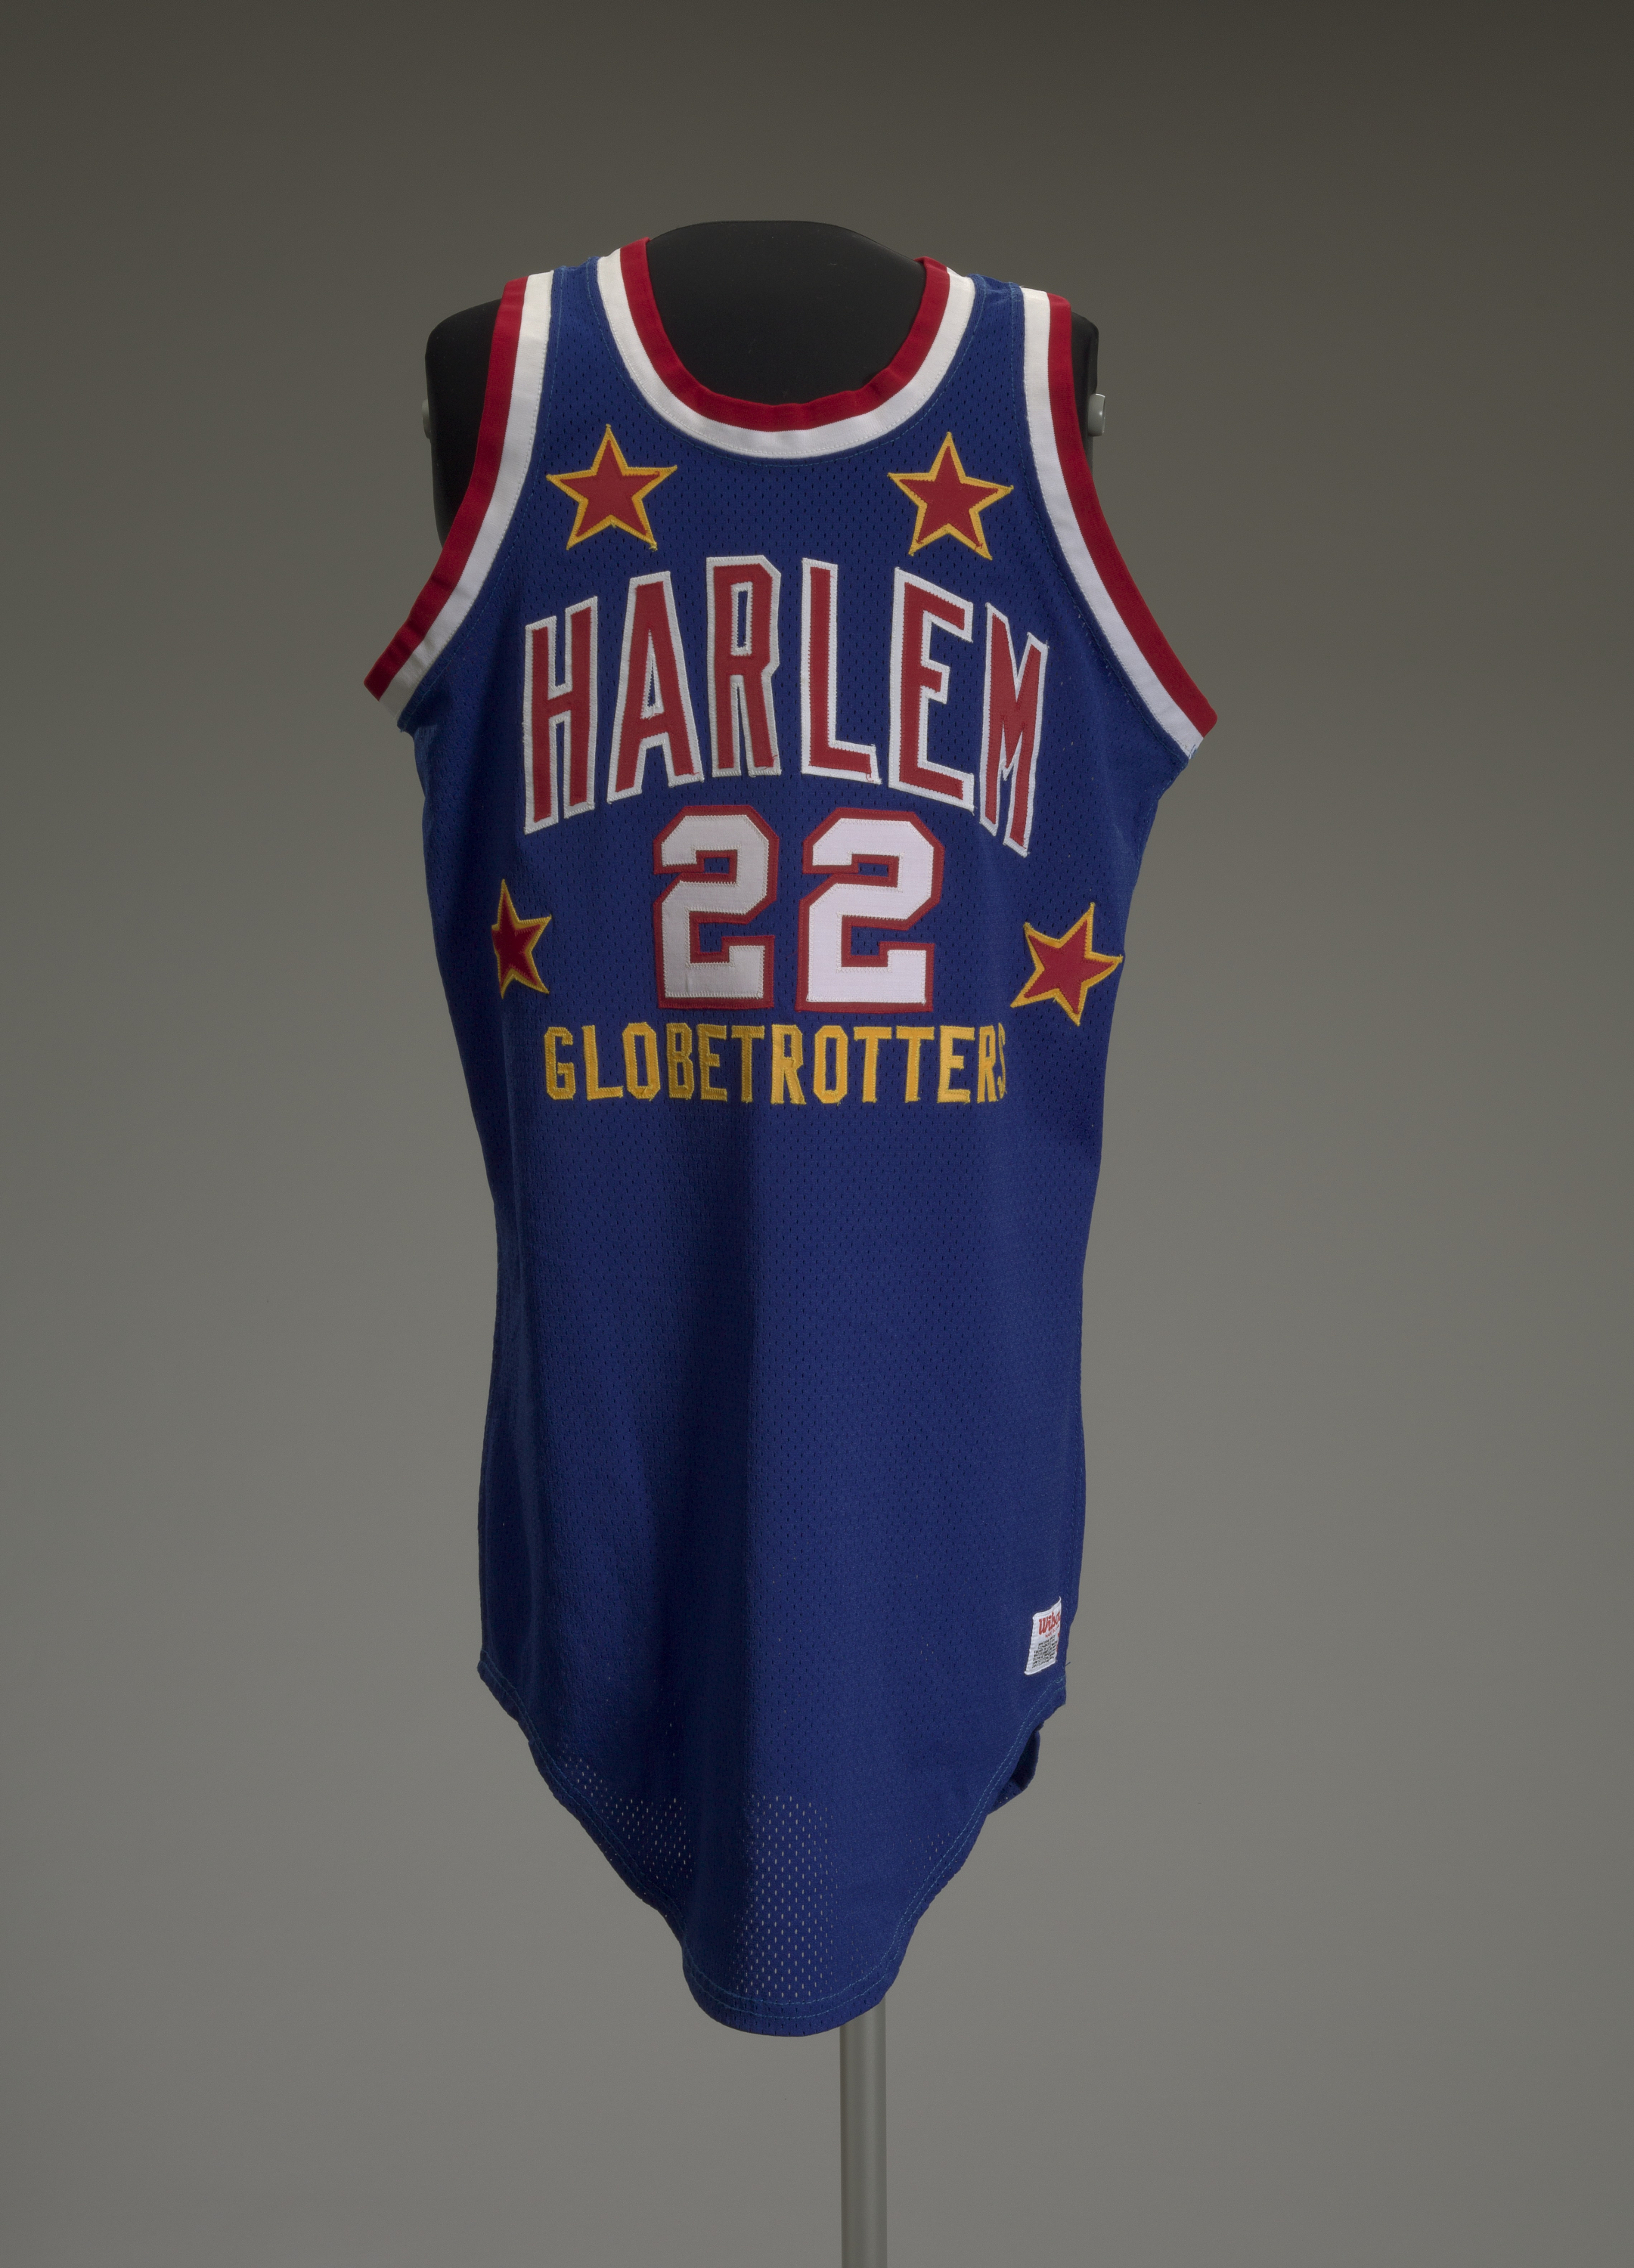 photo of basketball jersey of Harlem Globe Trotter Curly Neal #22